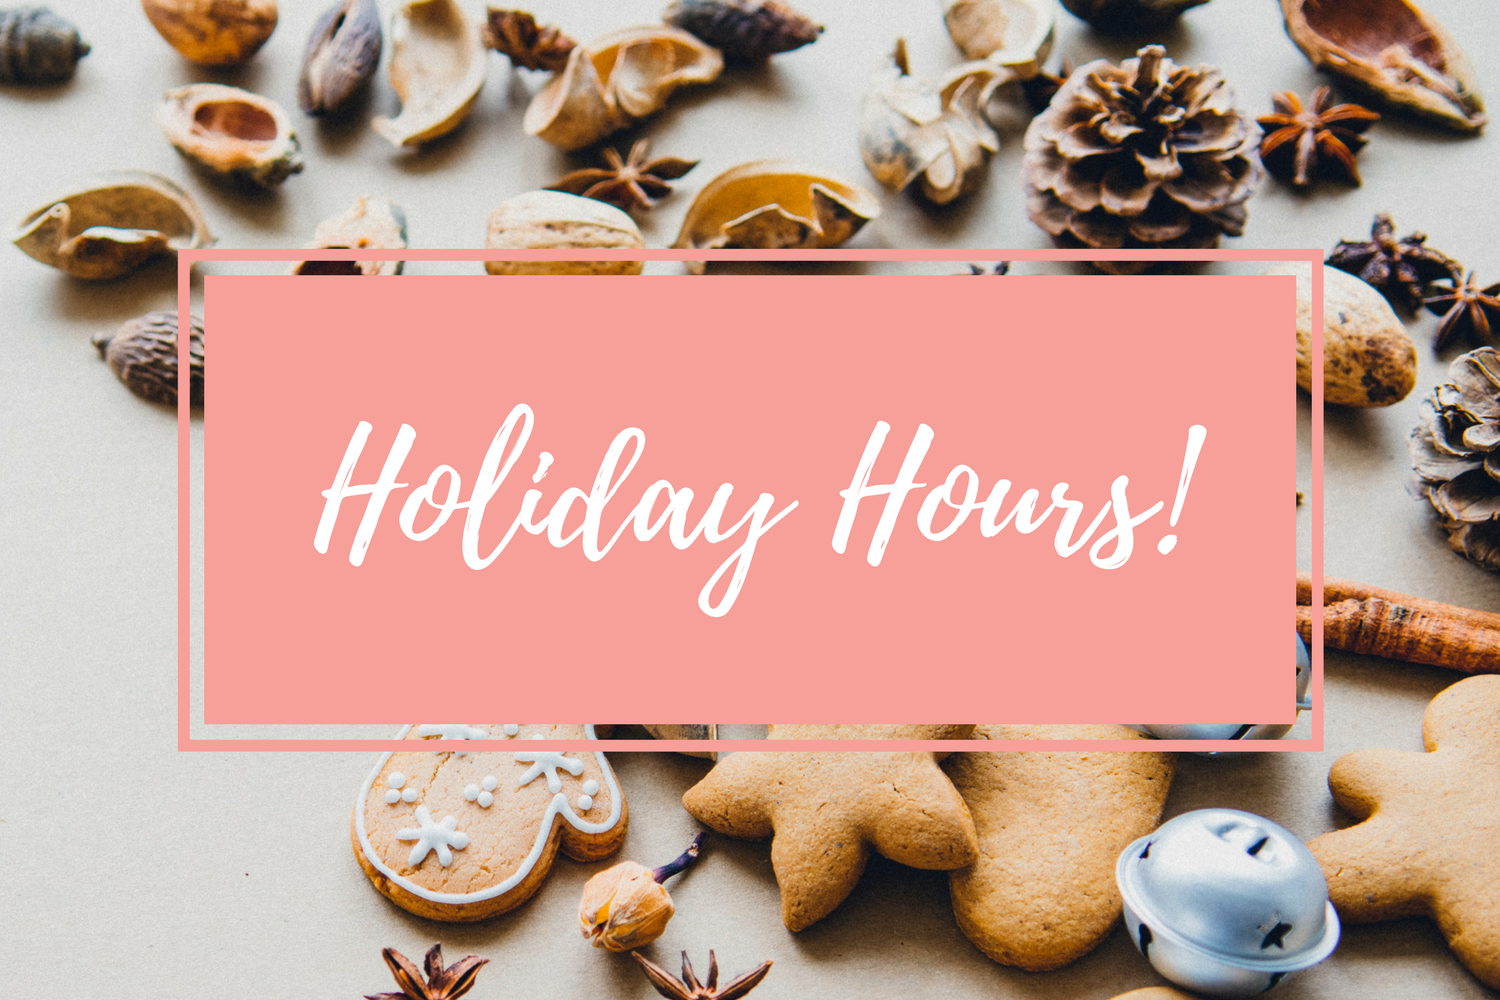 Sweet Cheeks Holiday Hours are Here!